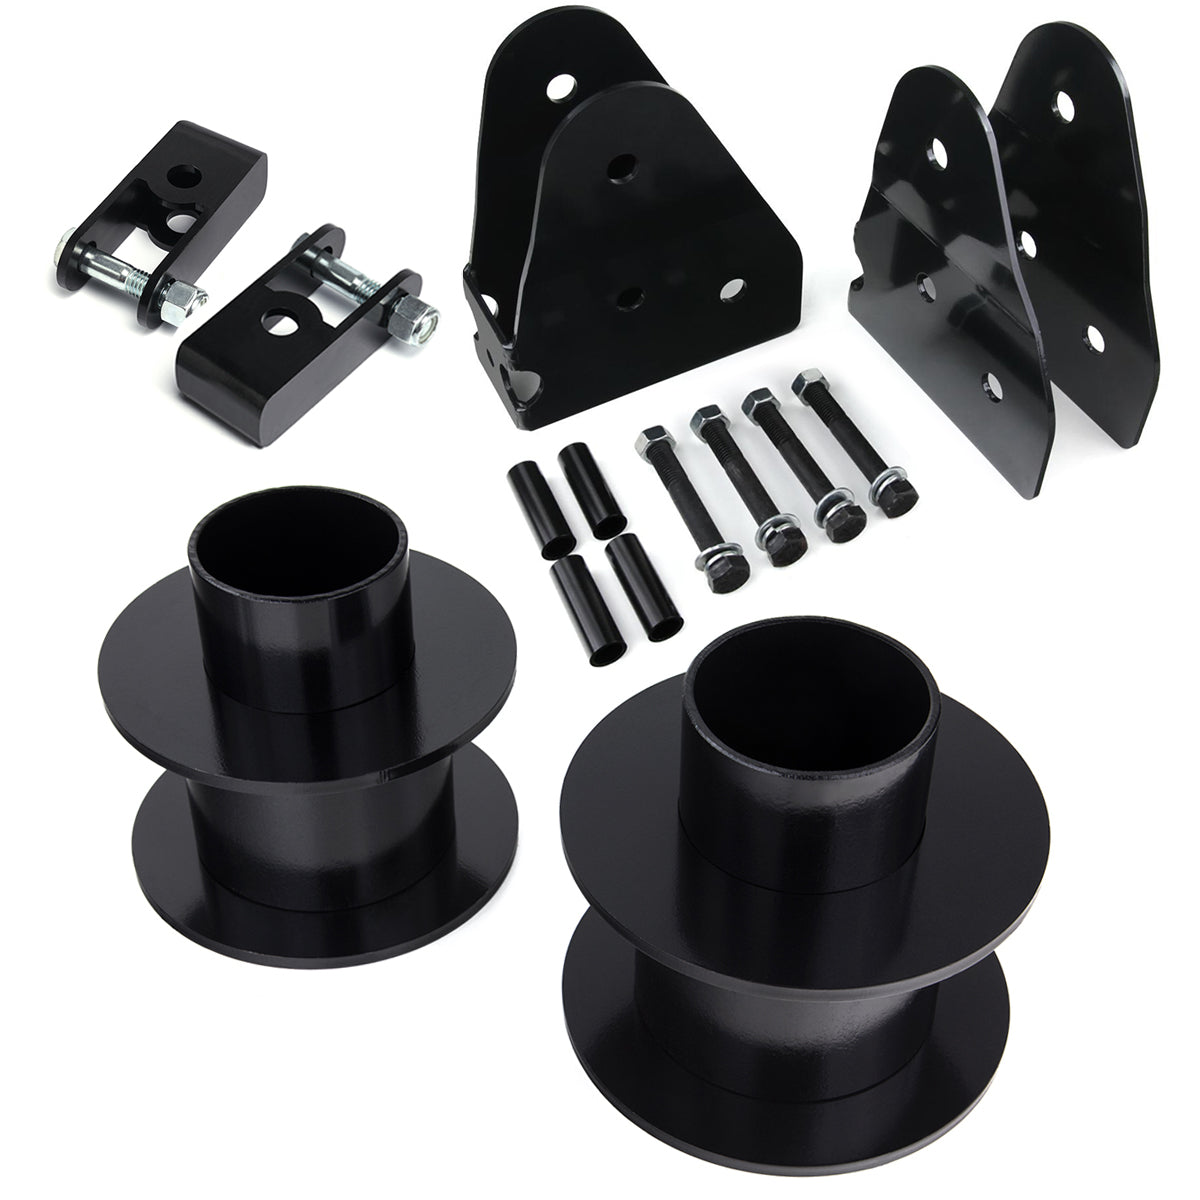 2005-2017 Ford F-250 Full Lift Kit with Shock Extender and Radius Arm Drop Brackets